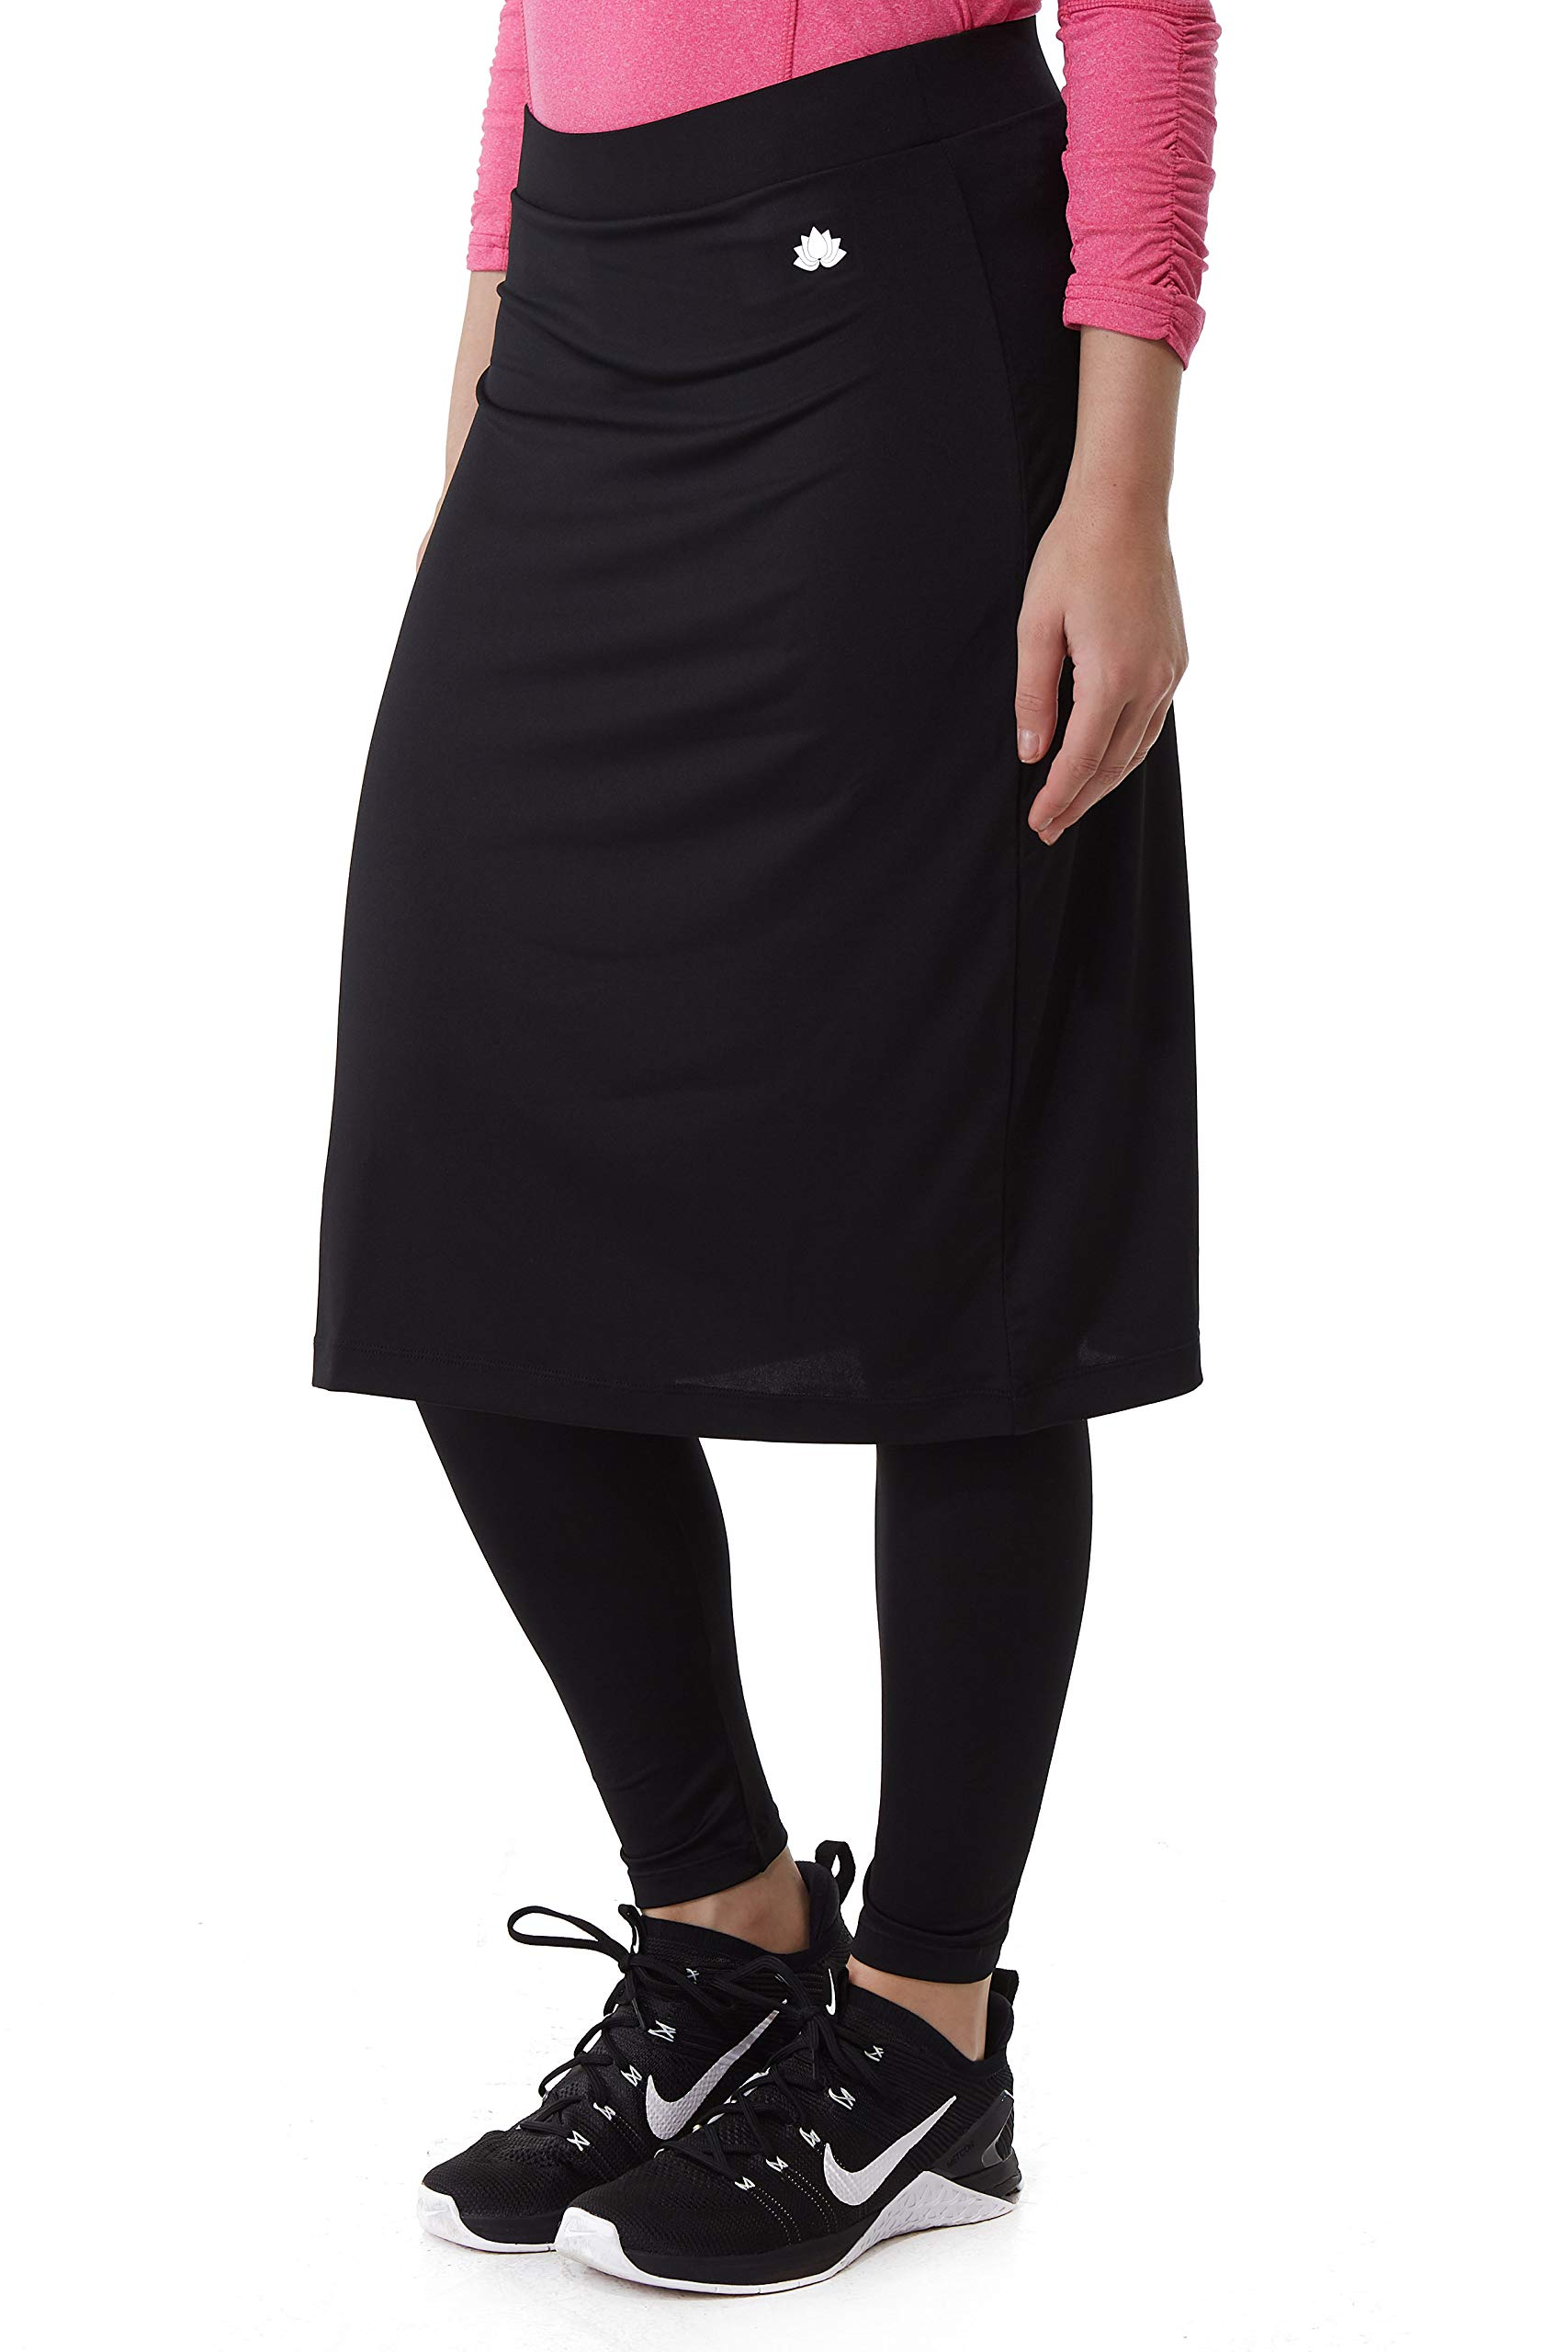 Snoga Athletics Active Midi Skirt with Ankle-Length Leggings - Black, XS by Snoga Athletics